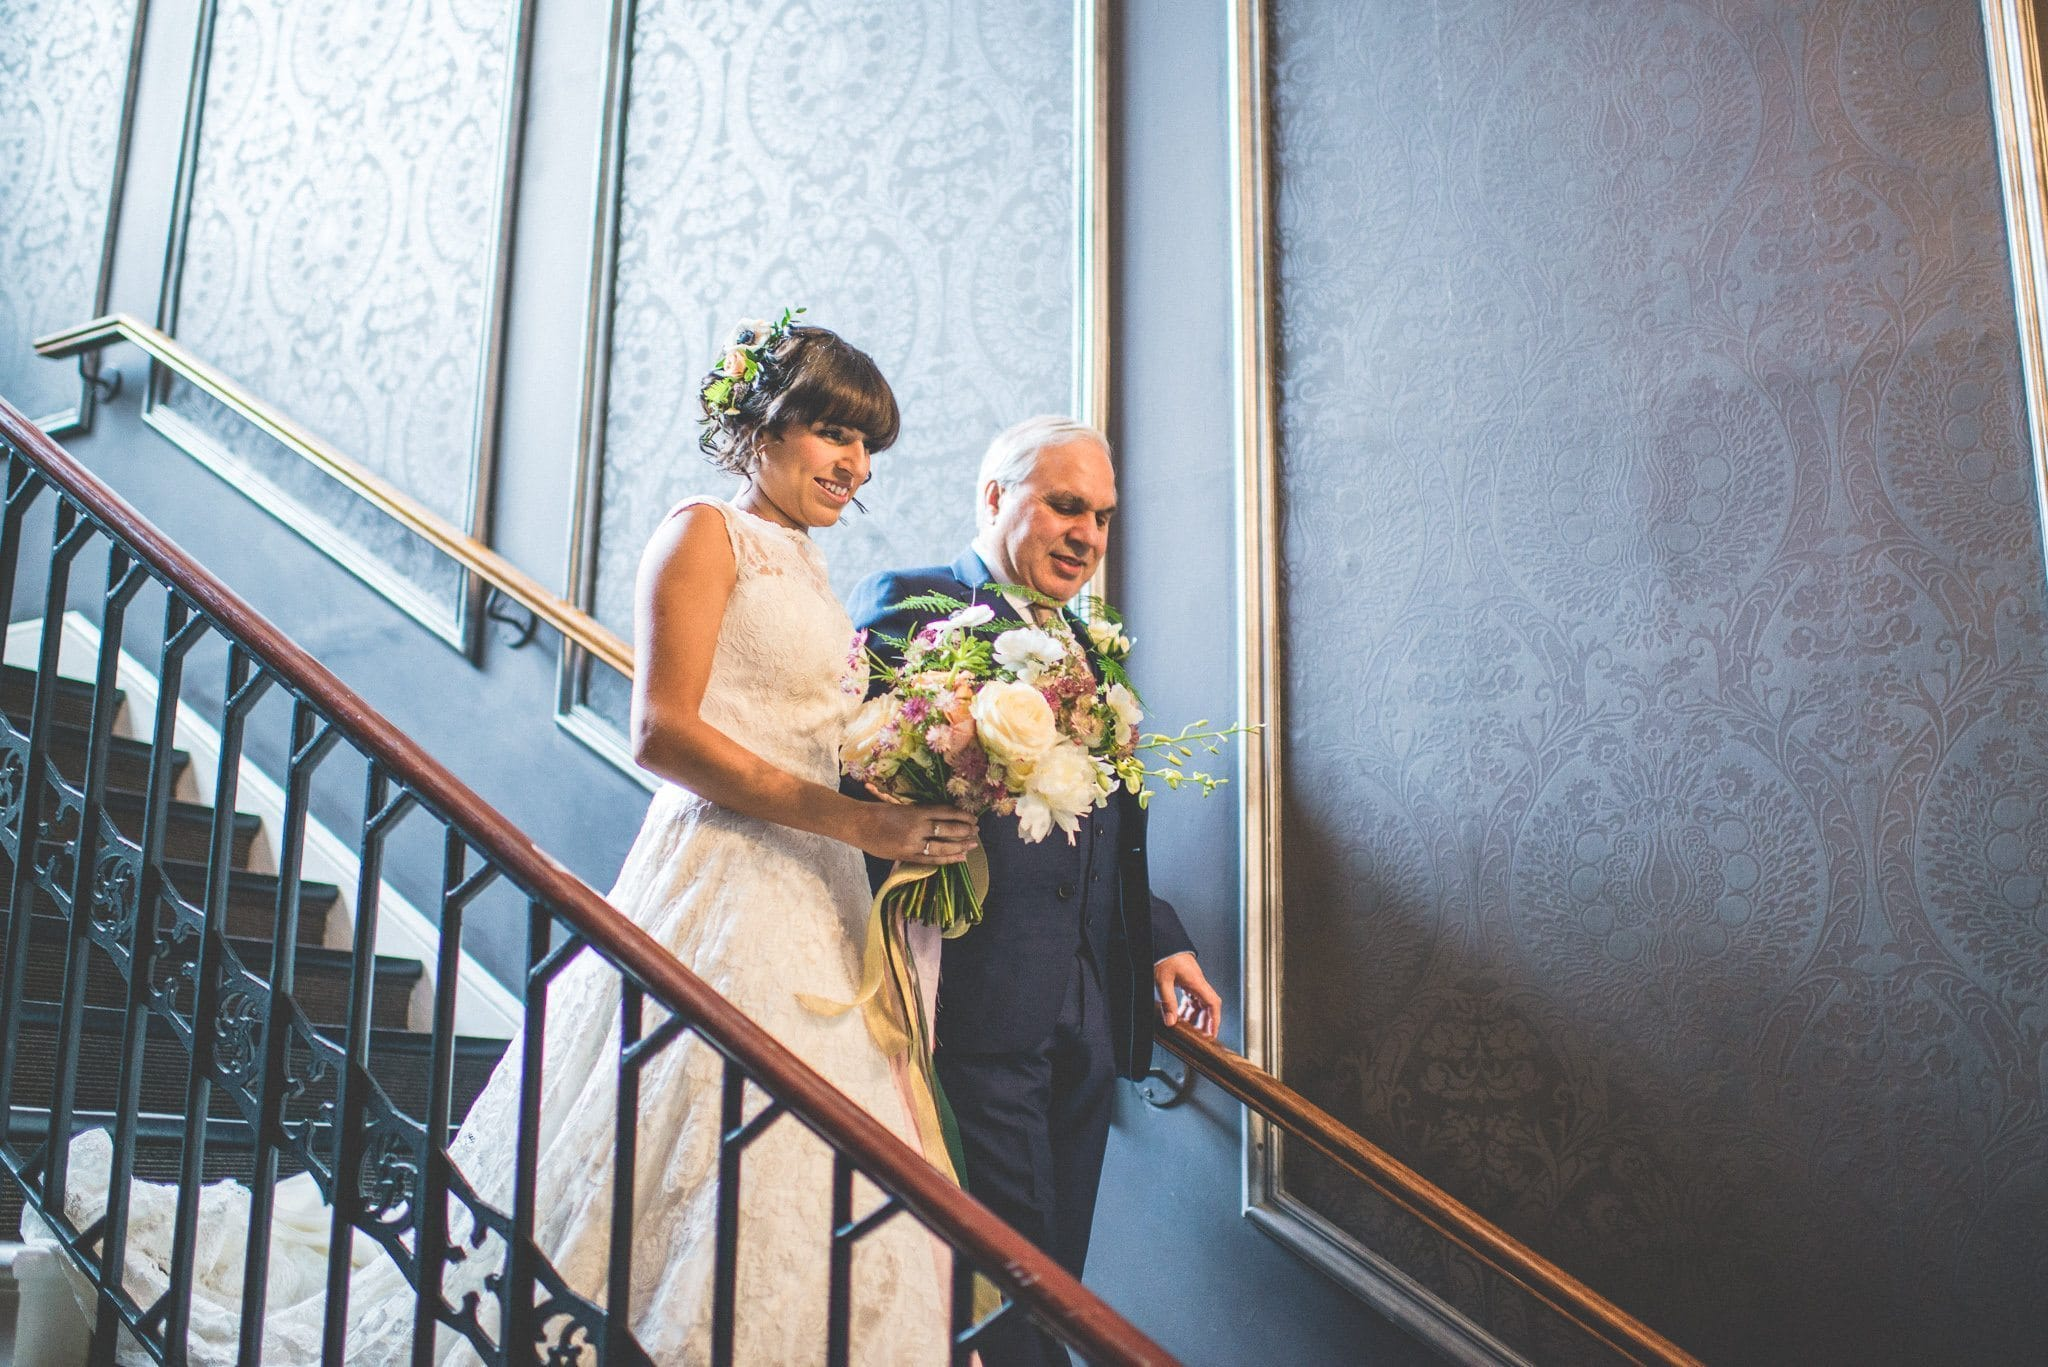 The bride descends the staircase to the ceremony room at Nonsuch Mansion